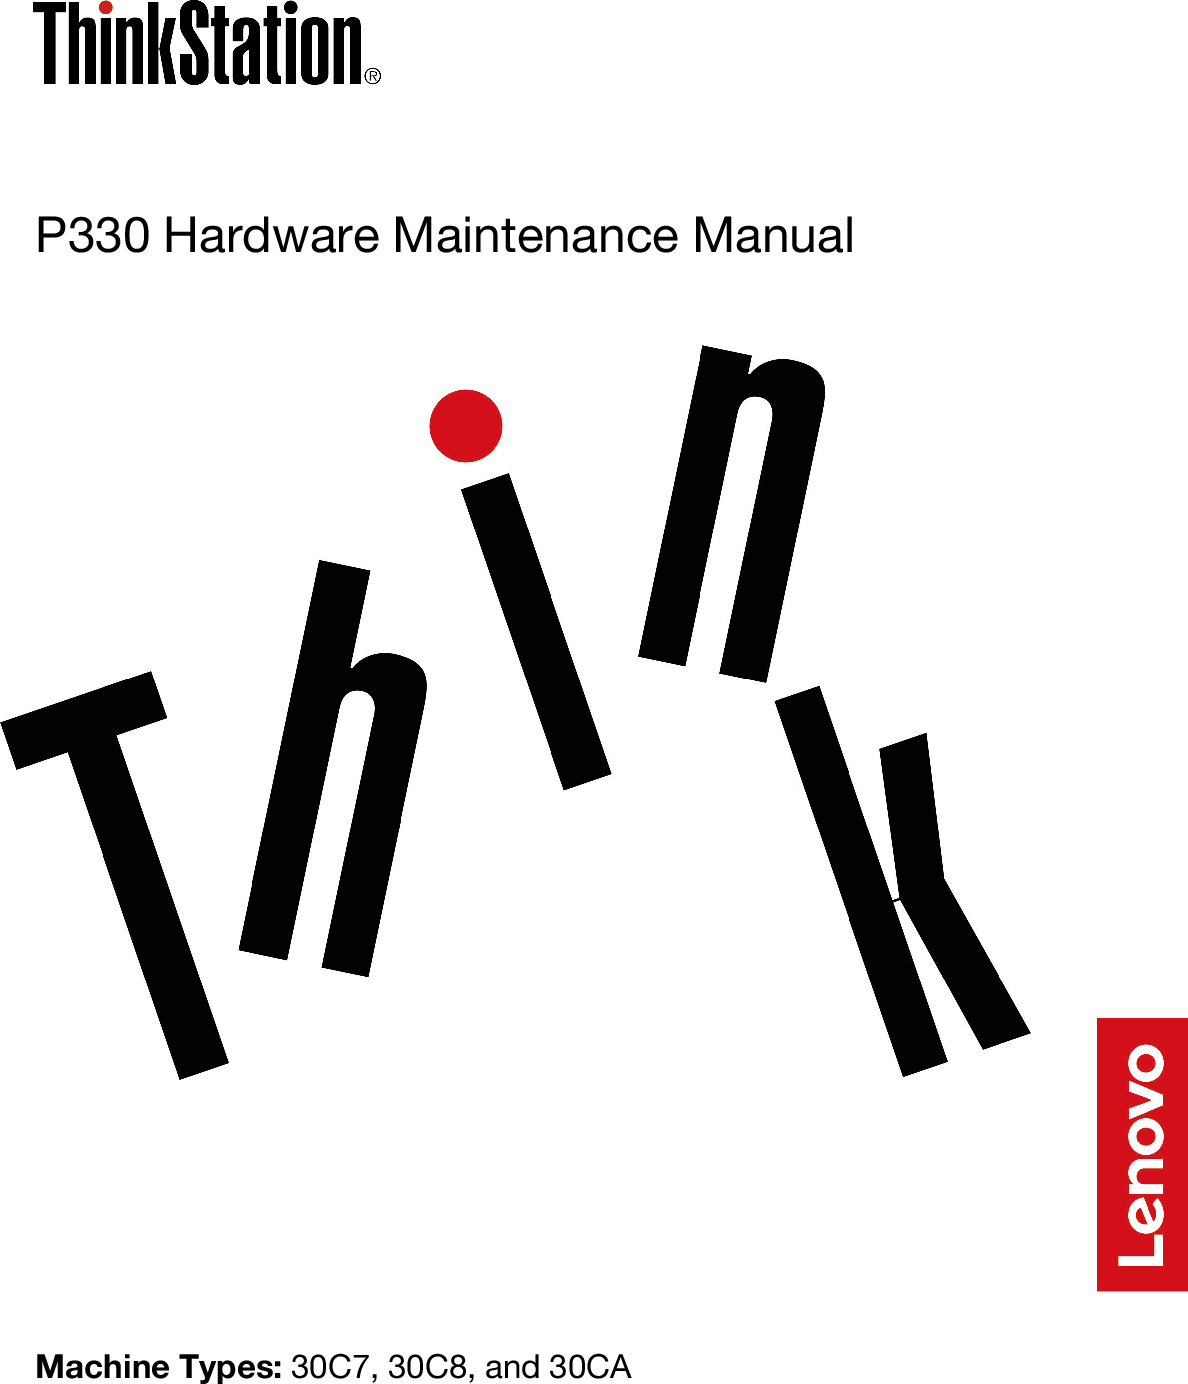 Lenovo P330 Hardware Maintenance Manual (English) (Small